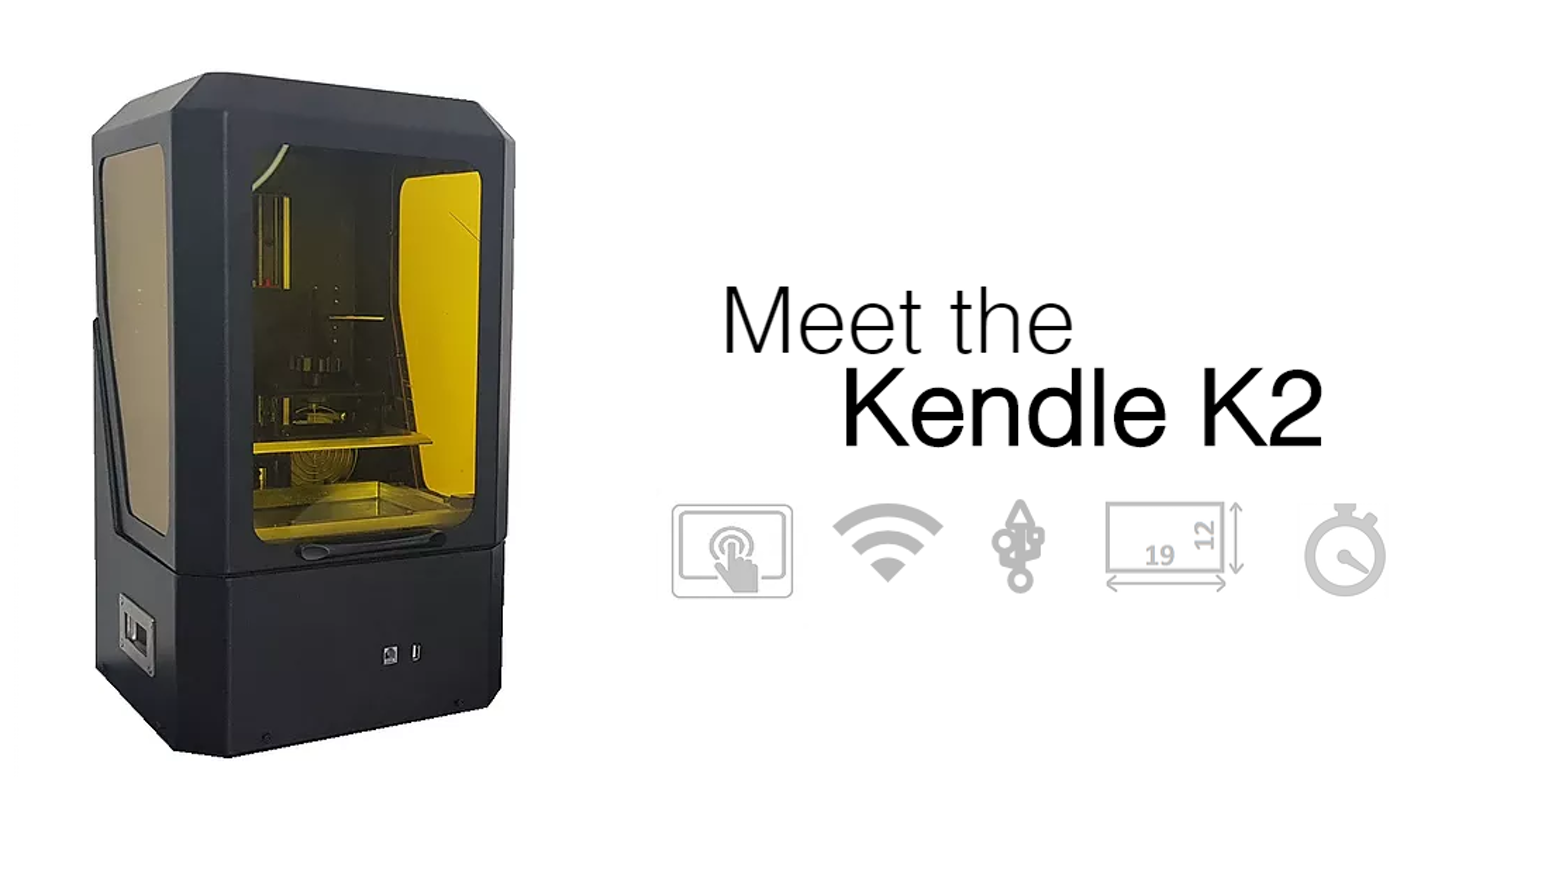 Kendle K2 | affordable large printing area SLA 3d printer is the top crowdfunding project launched today. Kendle K2 | affordable large printing area SLA 3d printer raised over $282831 from 39 backers. Other top projects include NESmaker - Make NES Games. No coding required., Crypt DugOut Fantasy Football Undead / Necromancer Display, The Unipörs...